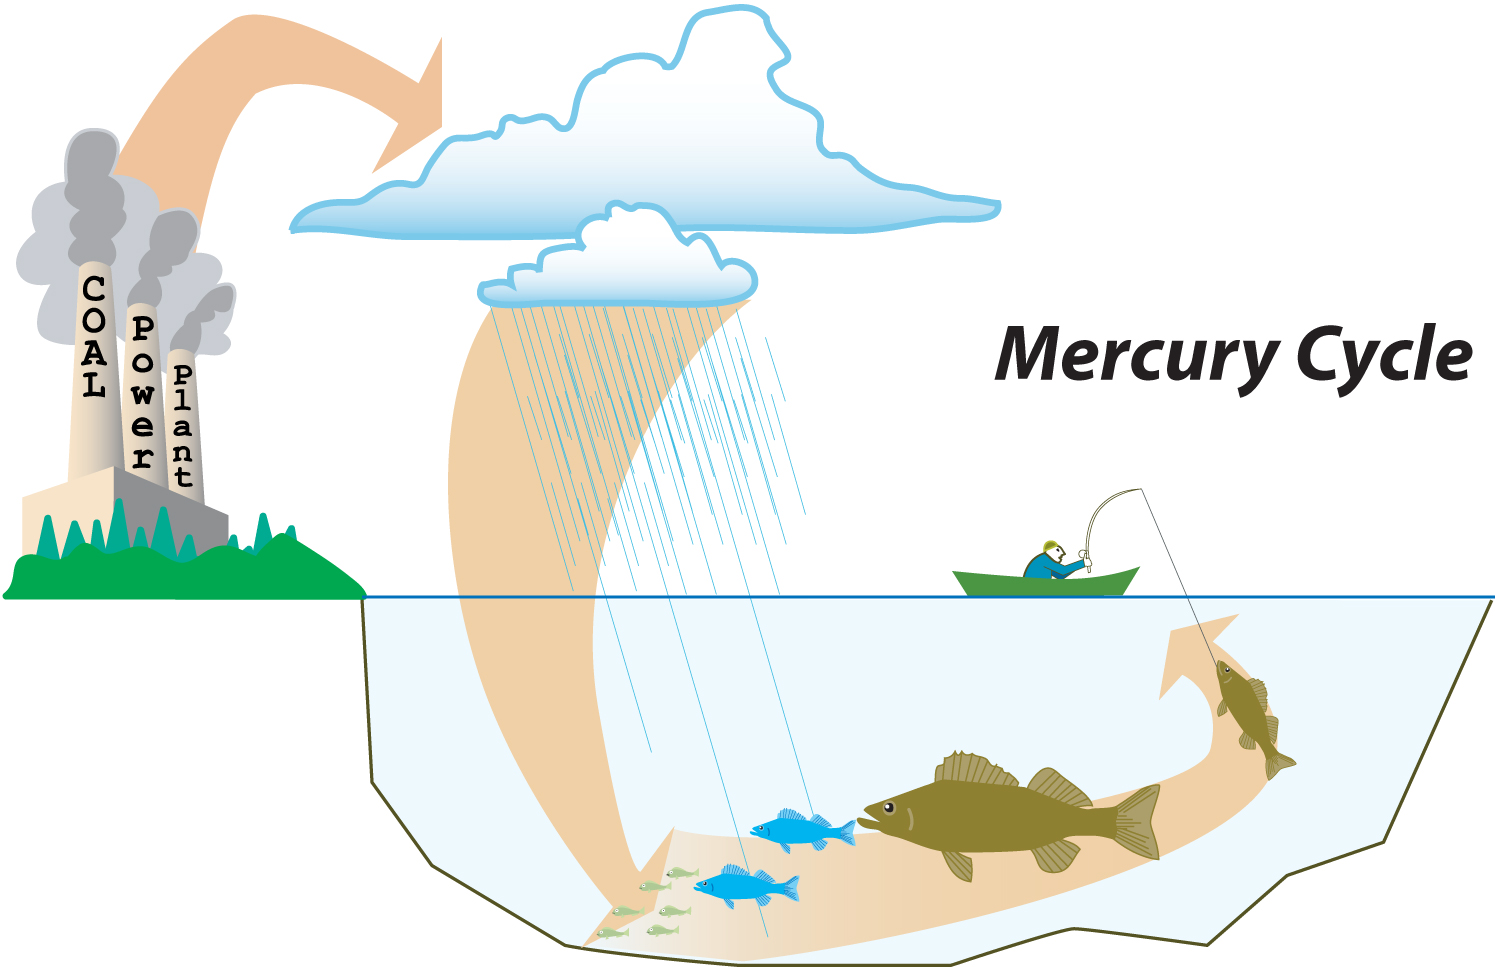 Medical exhibits image furthermore Free Clipart 5112 further The Decline Of Mercury Contamination New Study Brings Hopeful News For Northern Lakes together with 1913 Ndash Ah Sturtevant Makes A Ge ic Map furthermore Soalan Sains Tahun 4 Bhg A B Dan Jawapan. on food court diagram